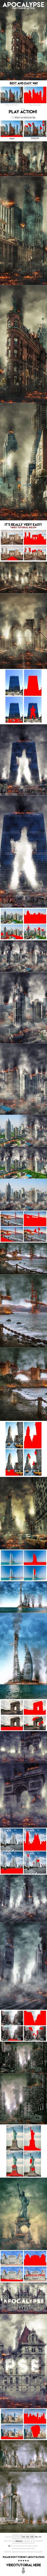 Apocalypse Photoshop Action — Photoshop ATN #burn #template • Download ➝ https://graphicriver.net/item/apocalypse-photoshop-action/20111638?ref=pxcr